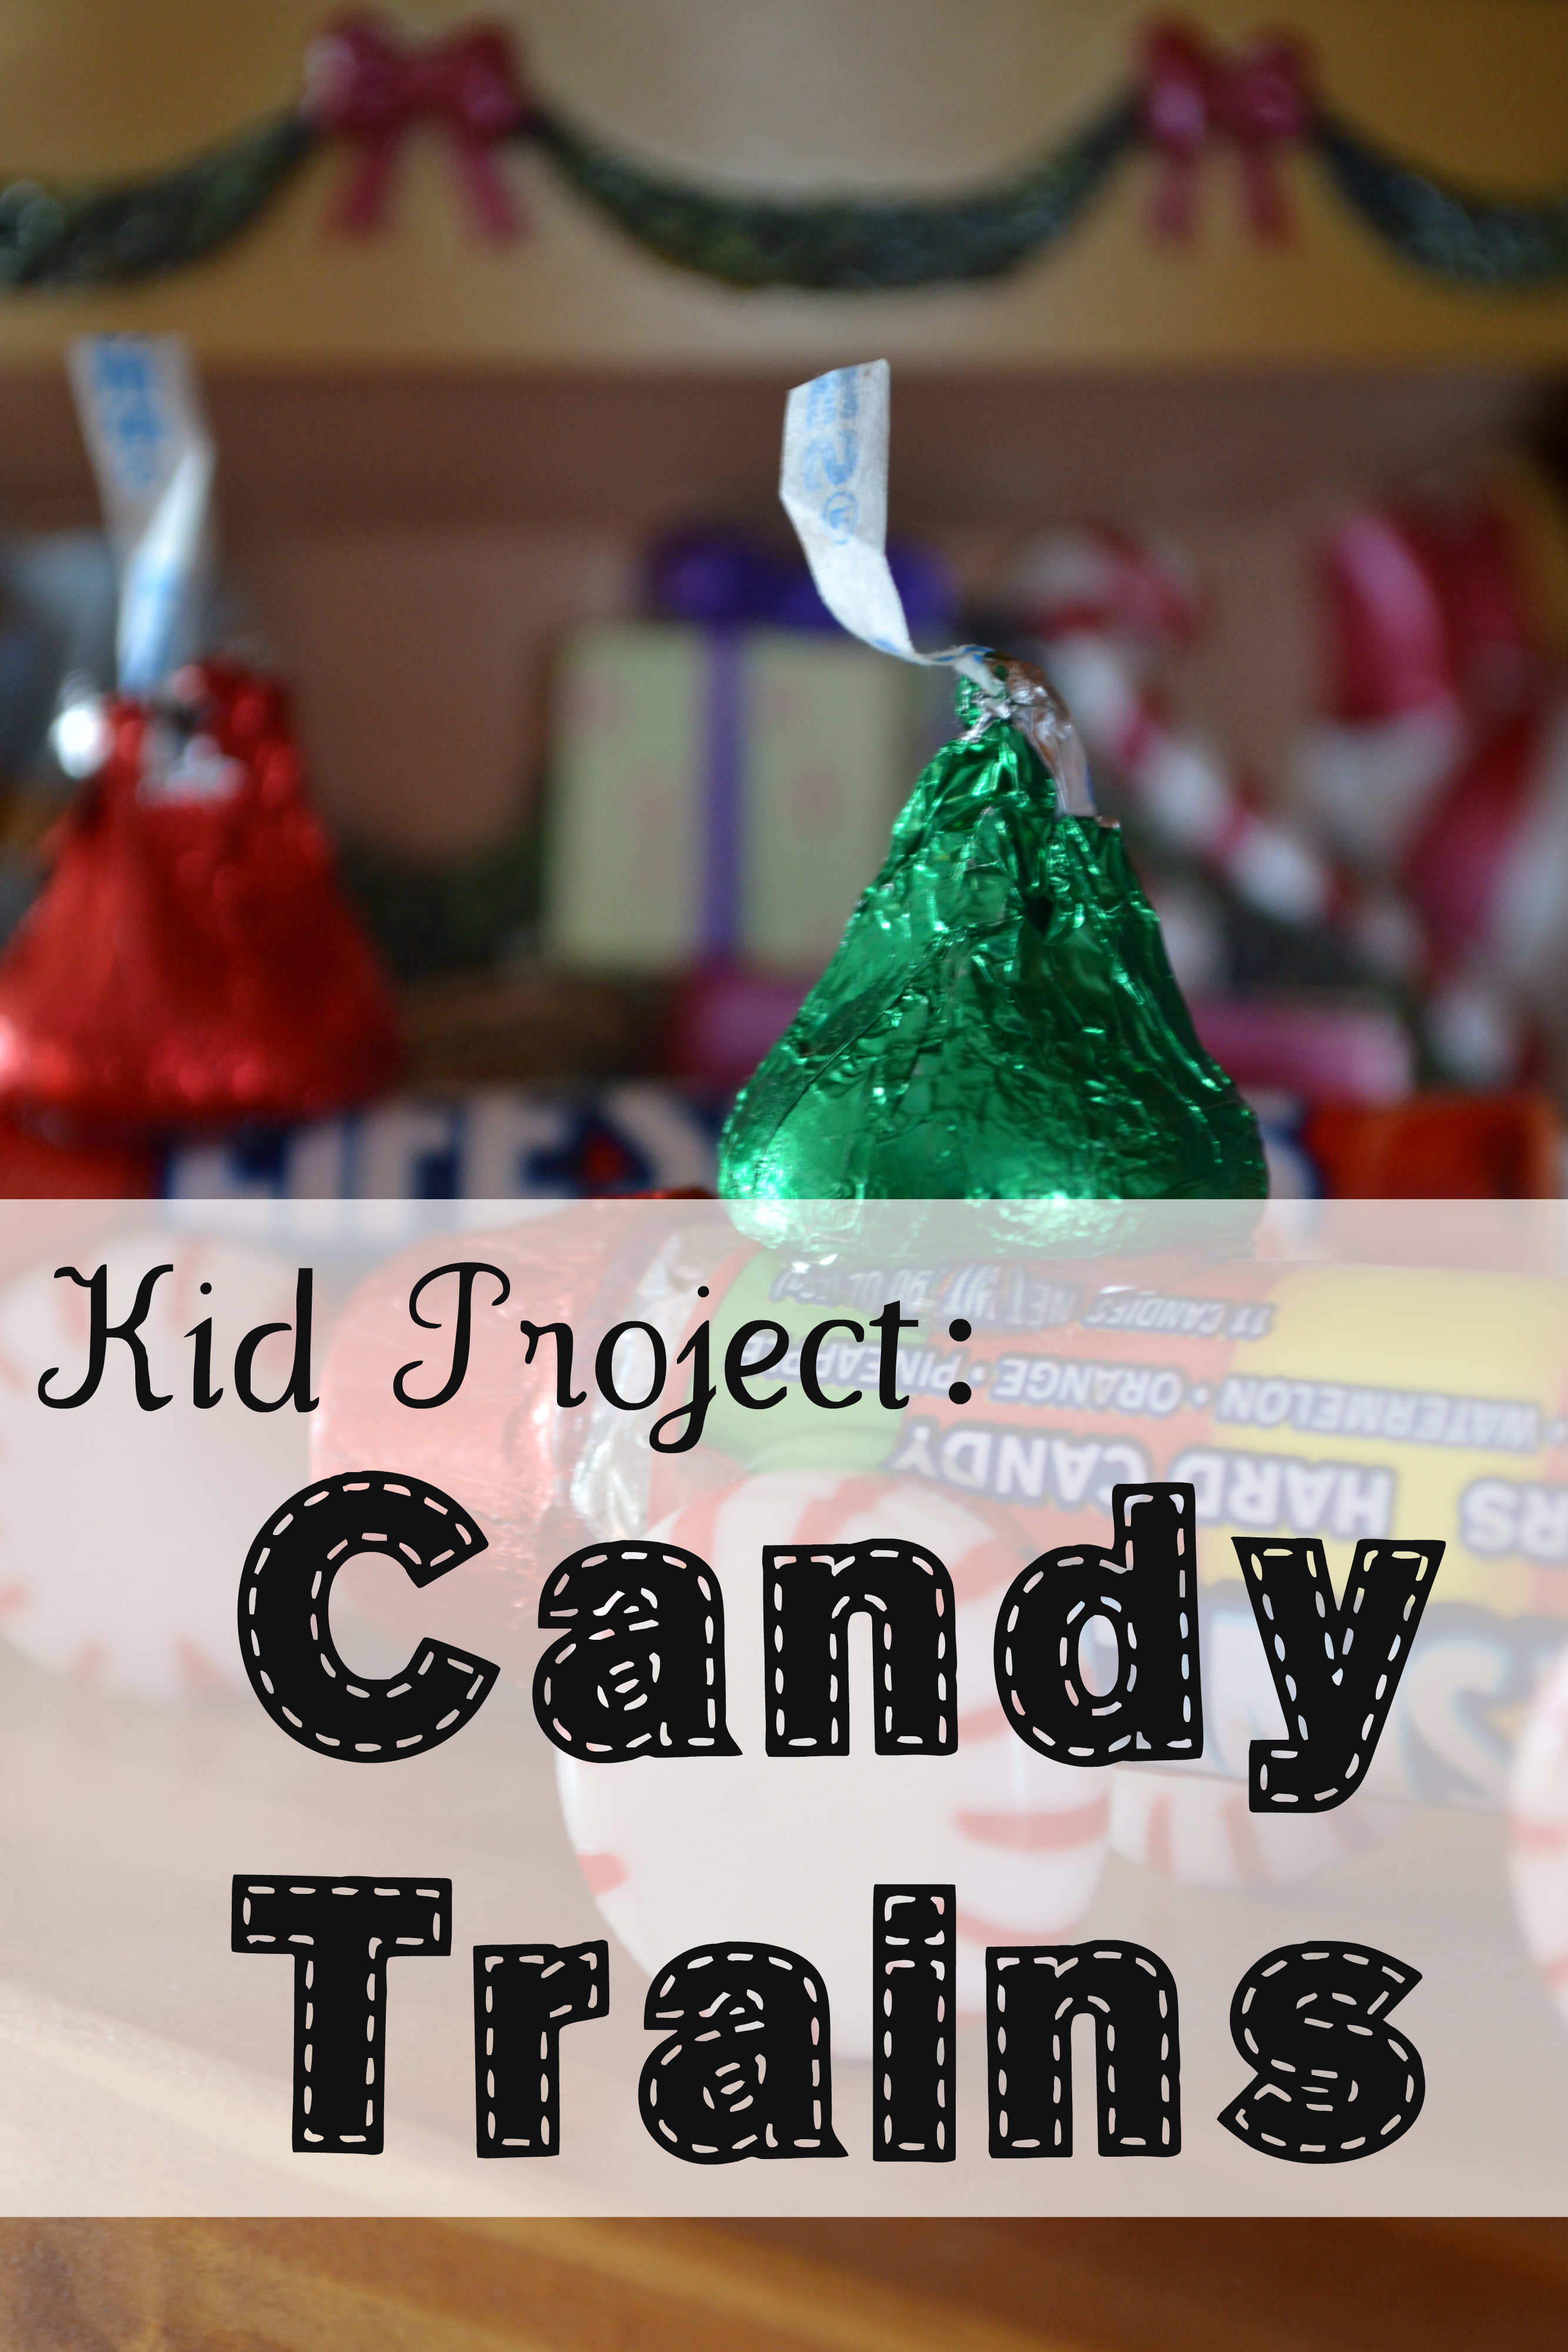 Christmas Candy Train.Make Delicious Candy Trains For Neighbors And Friends